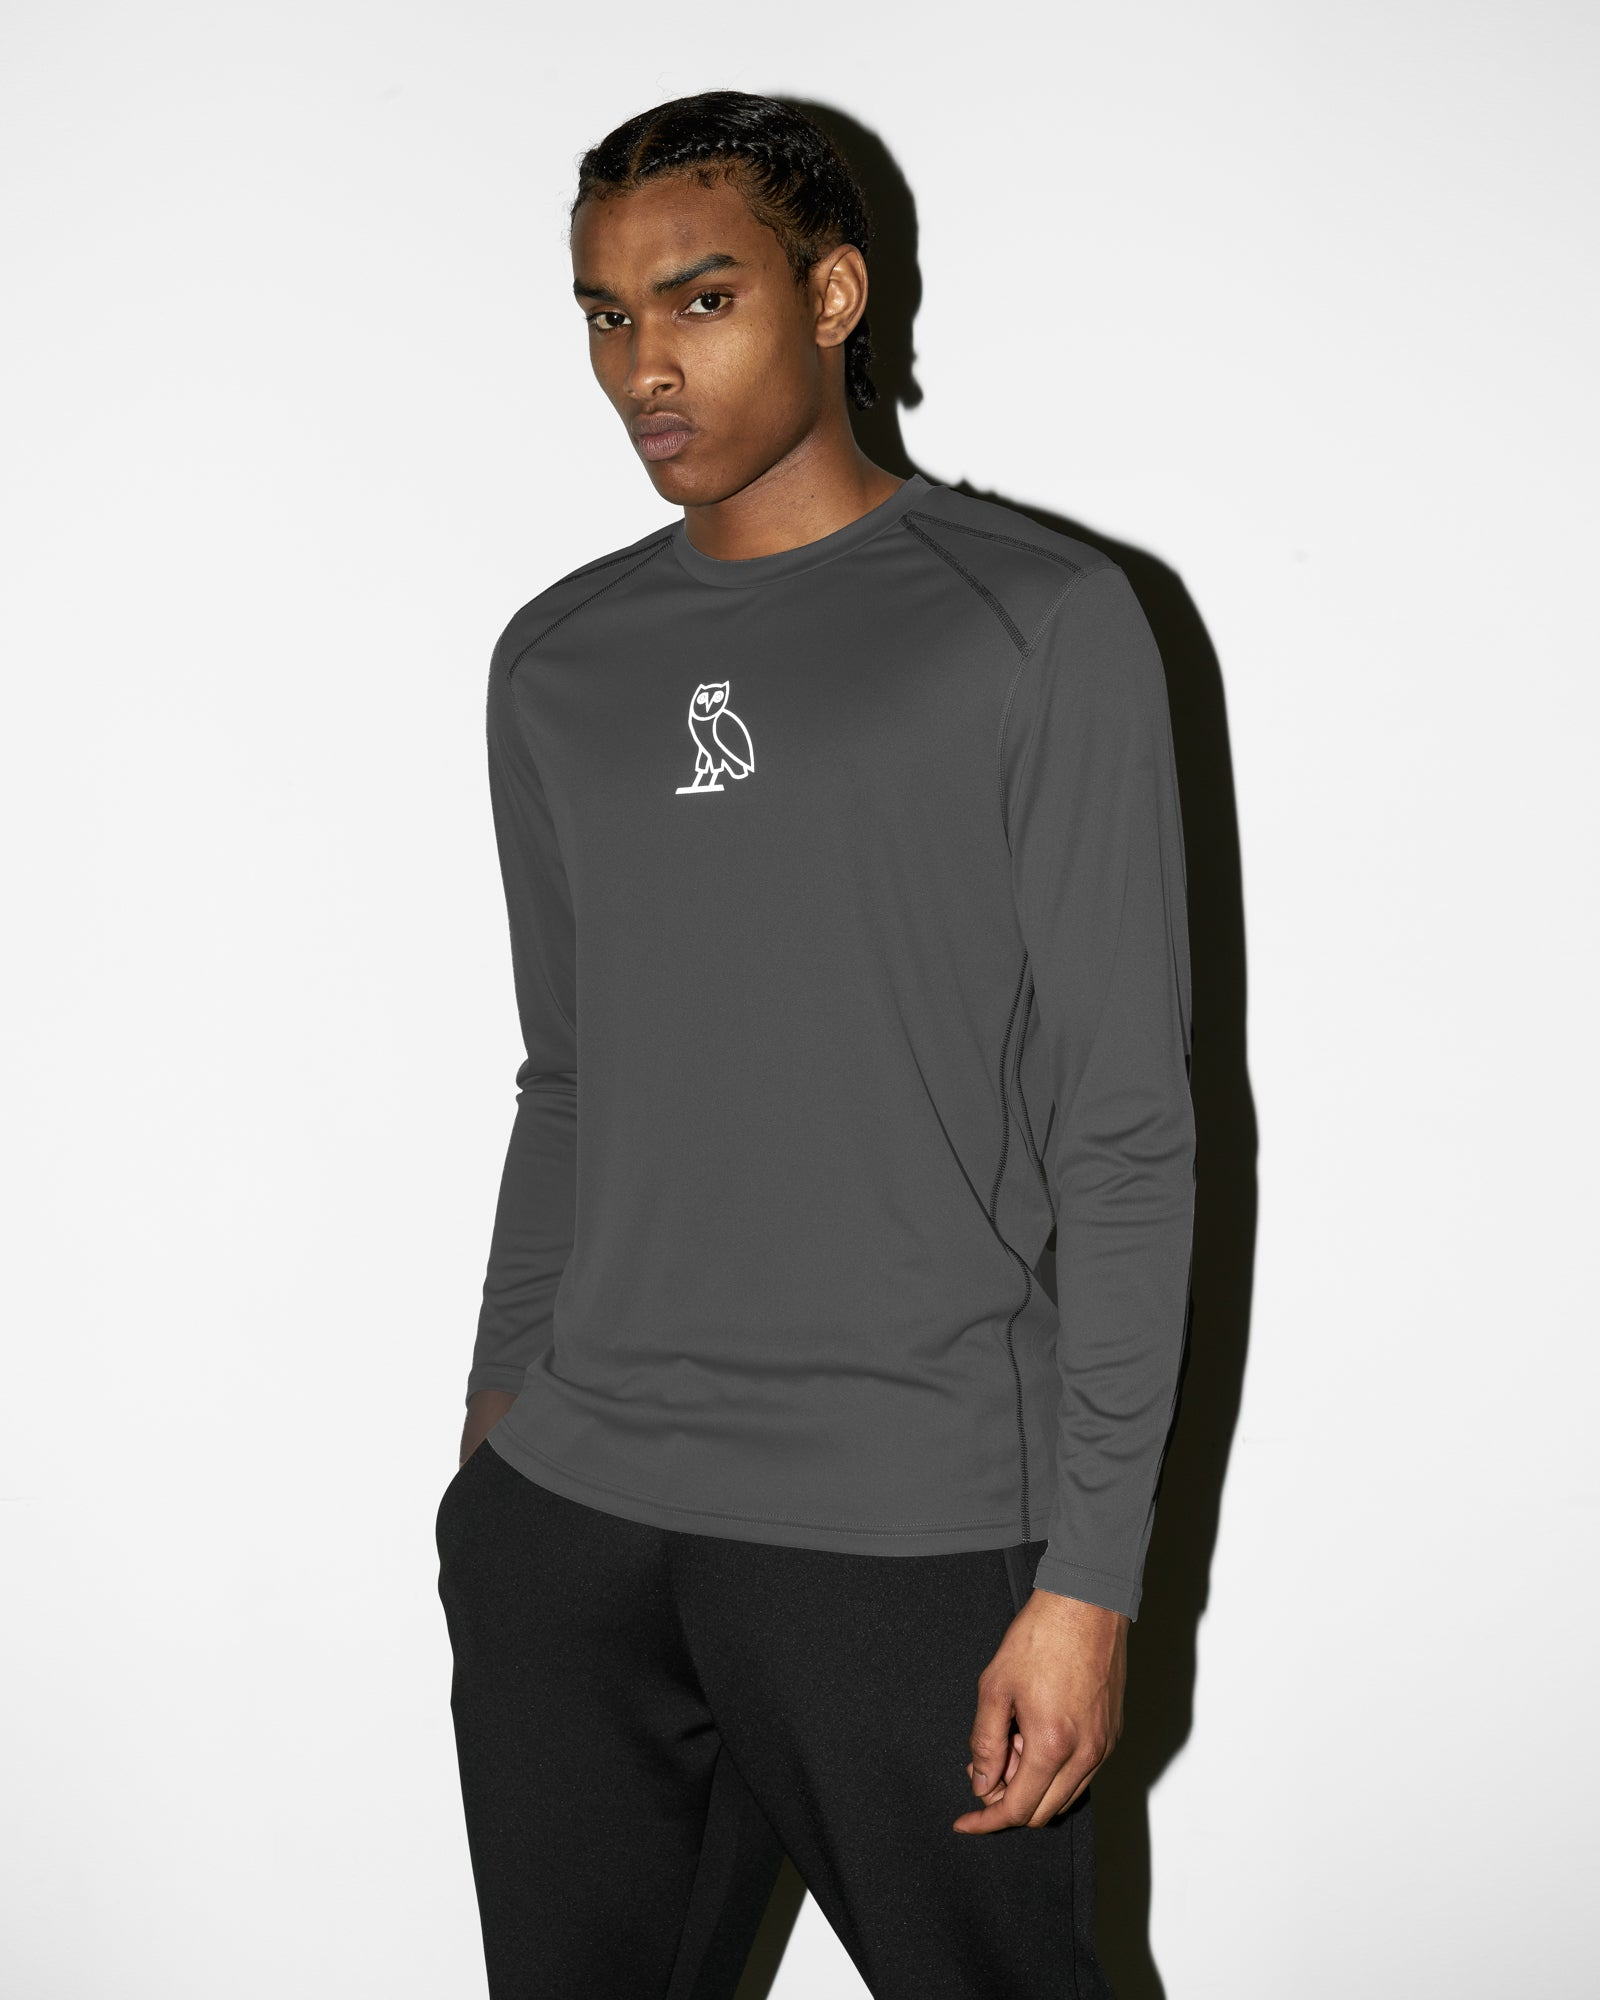 OVO OWL PERFORMANCE LONGSLEEVE T-SHIRT - GREY